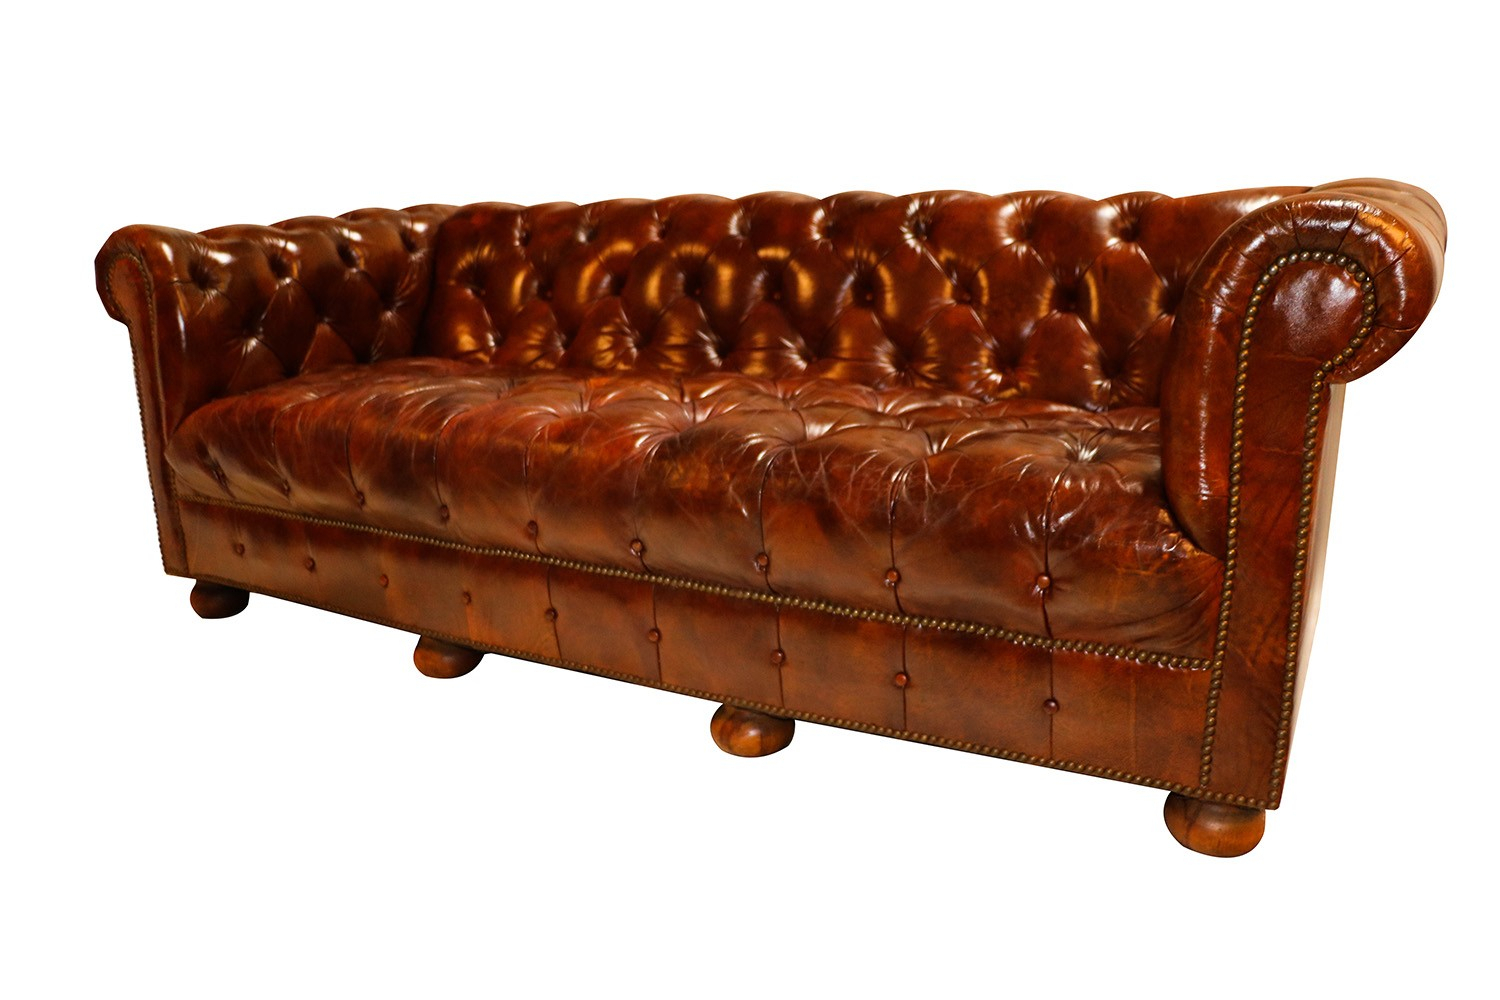 Vintage Chesterfield Style Brown Leather Button Tufted Pertaining To Vintage Chesterfield Sofas (View 10 of 15)